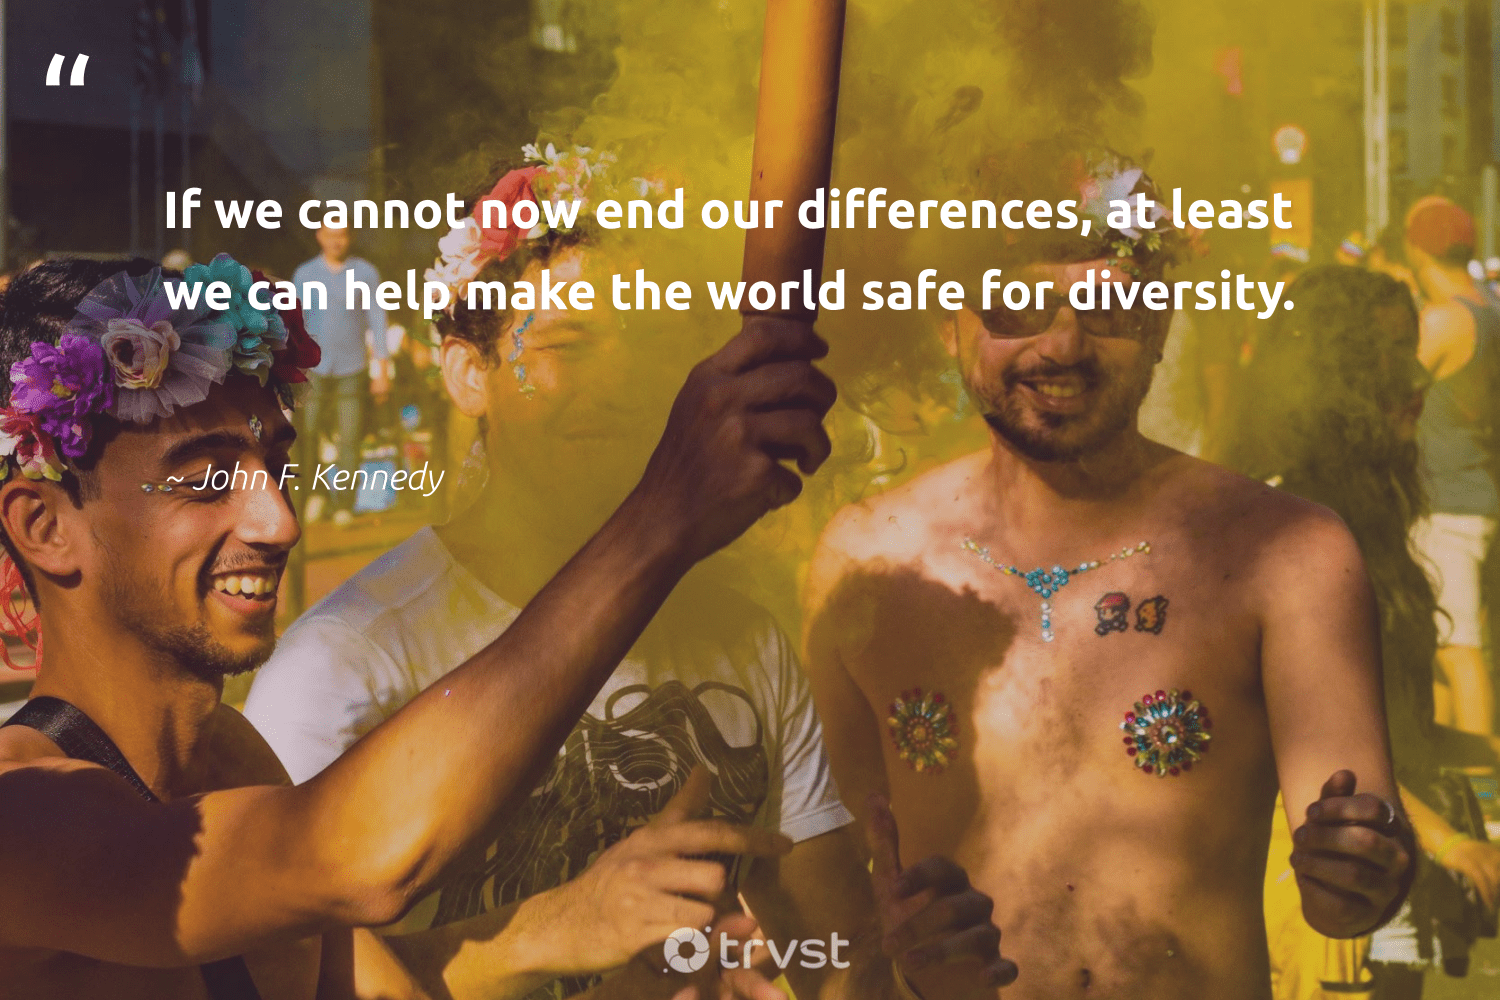 """If we cannot now end our differences, at least we can help make the world safe for diversity.""  - John F. Kennedy #trvst #quotes #diversity #representationmatters #discrimination #socialchange #giveback #bethechange #inclusion #socialgood #makeadifference #dotherightthing"